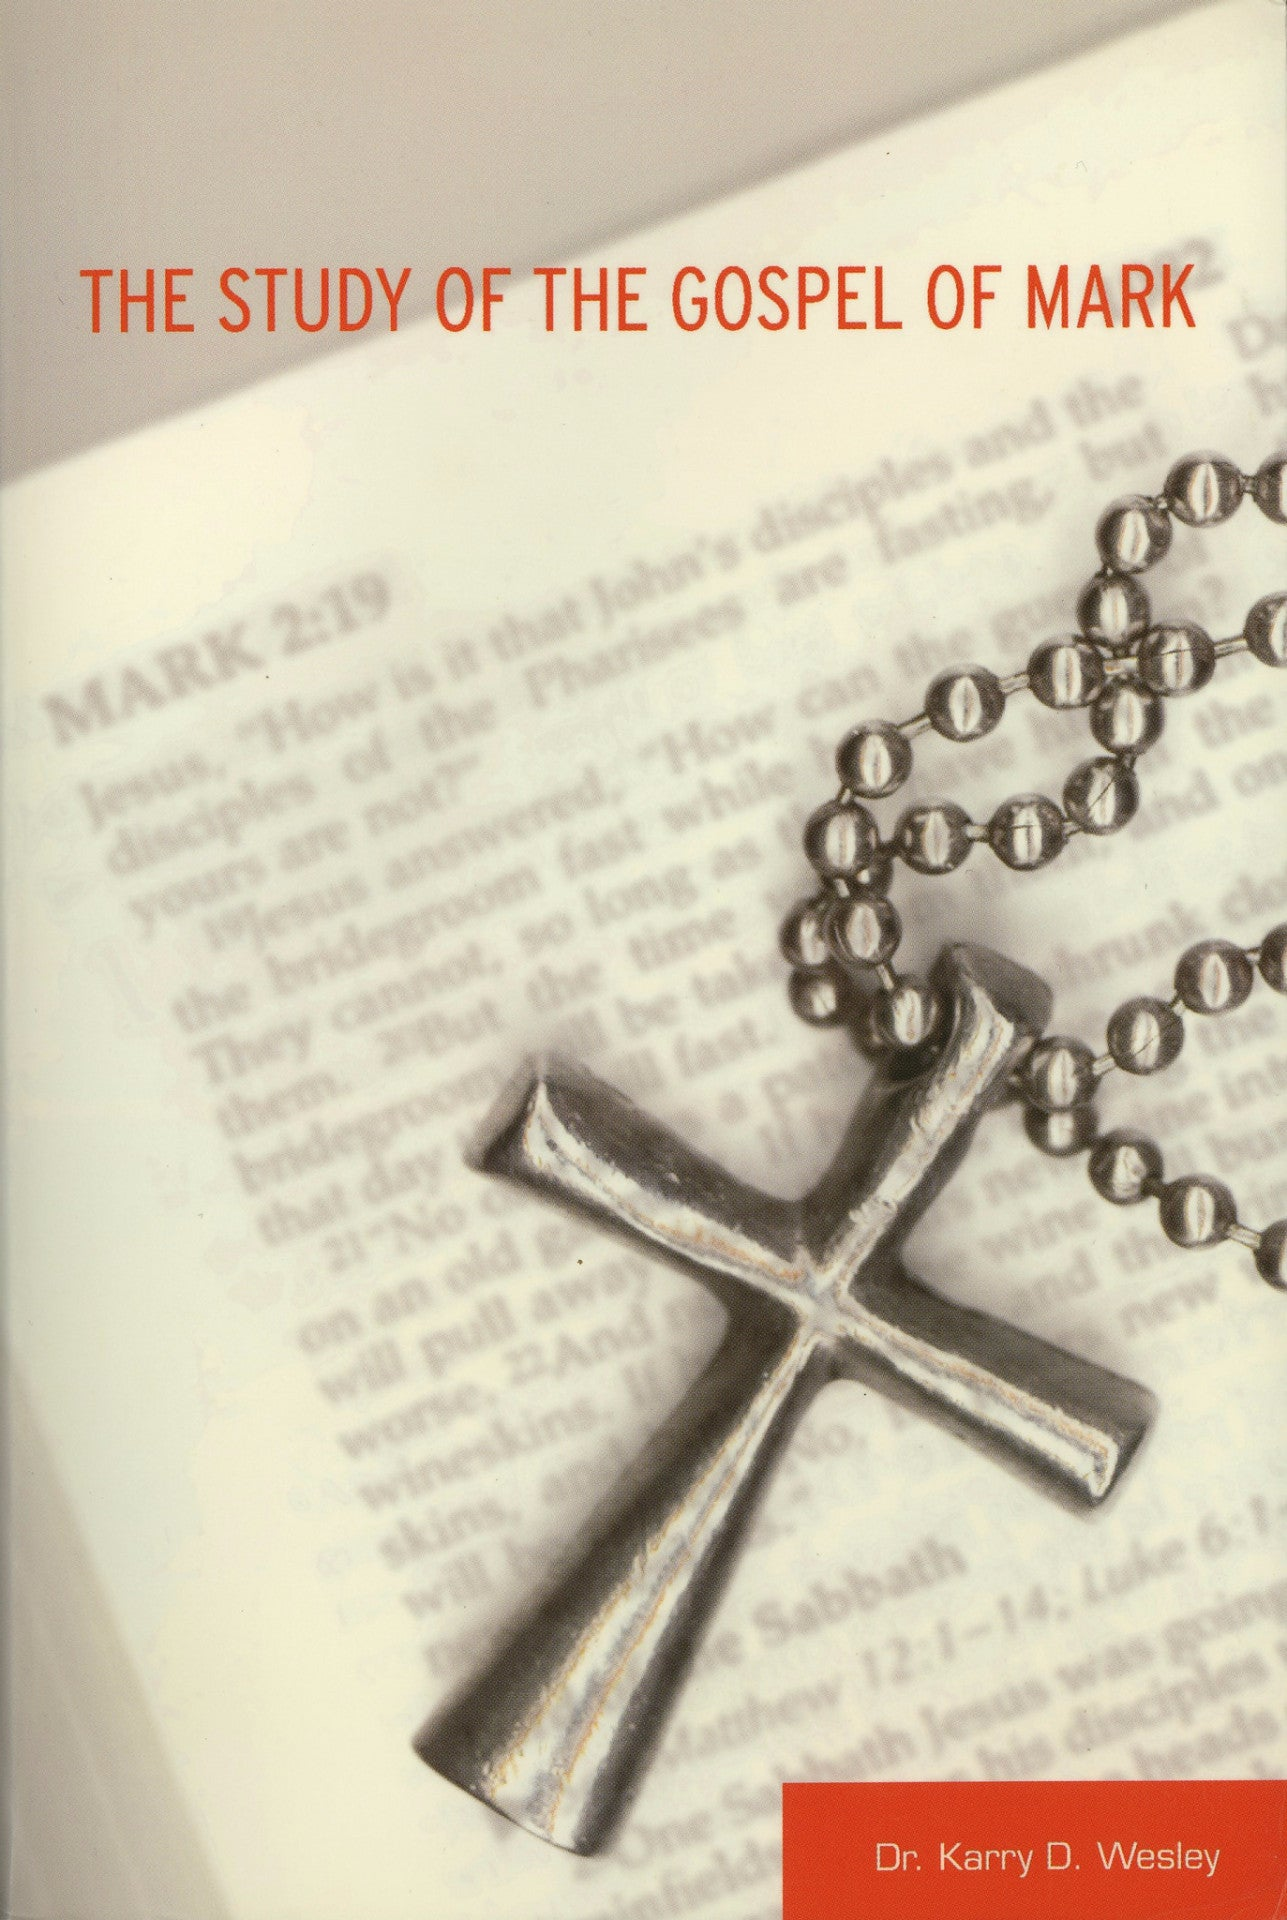 The Study of the Gospel of Mark